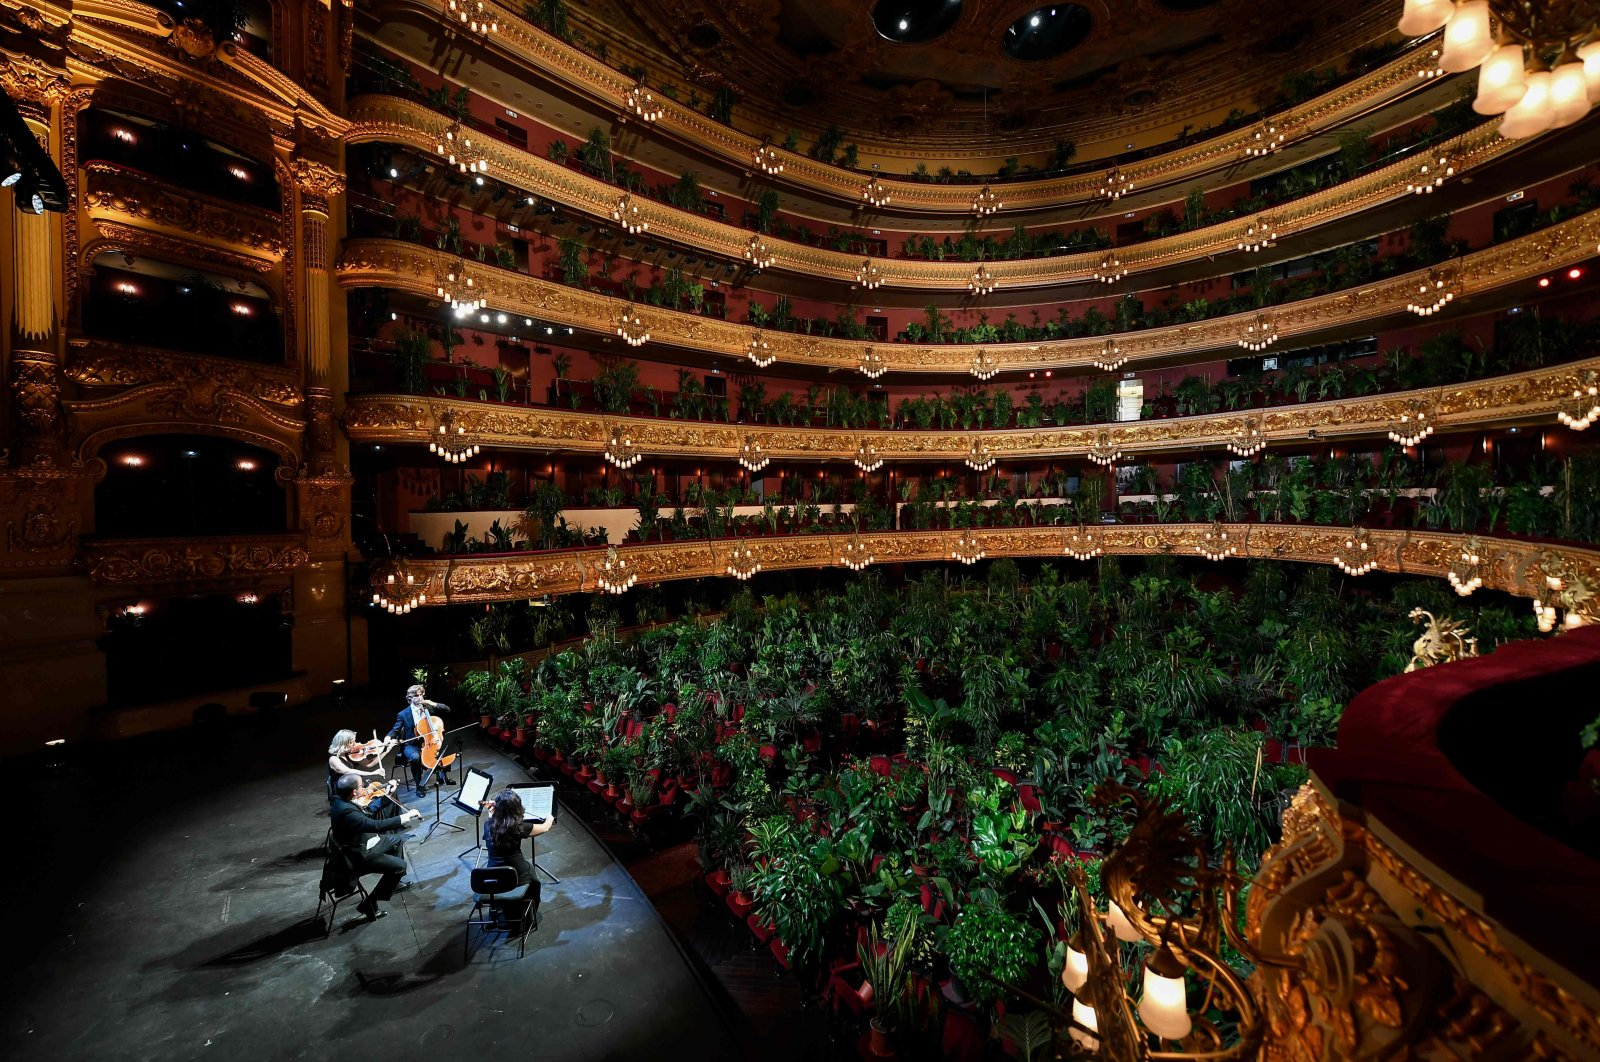 The Uceli Quartet perform for an audience made of plants during a concert created by Spanish artist Eugenio Ampudia and that will be later streamed to mark the reopening of the Liceu Grand Theatre in Barcelona on June 22, 2020. (AFP Photo)